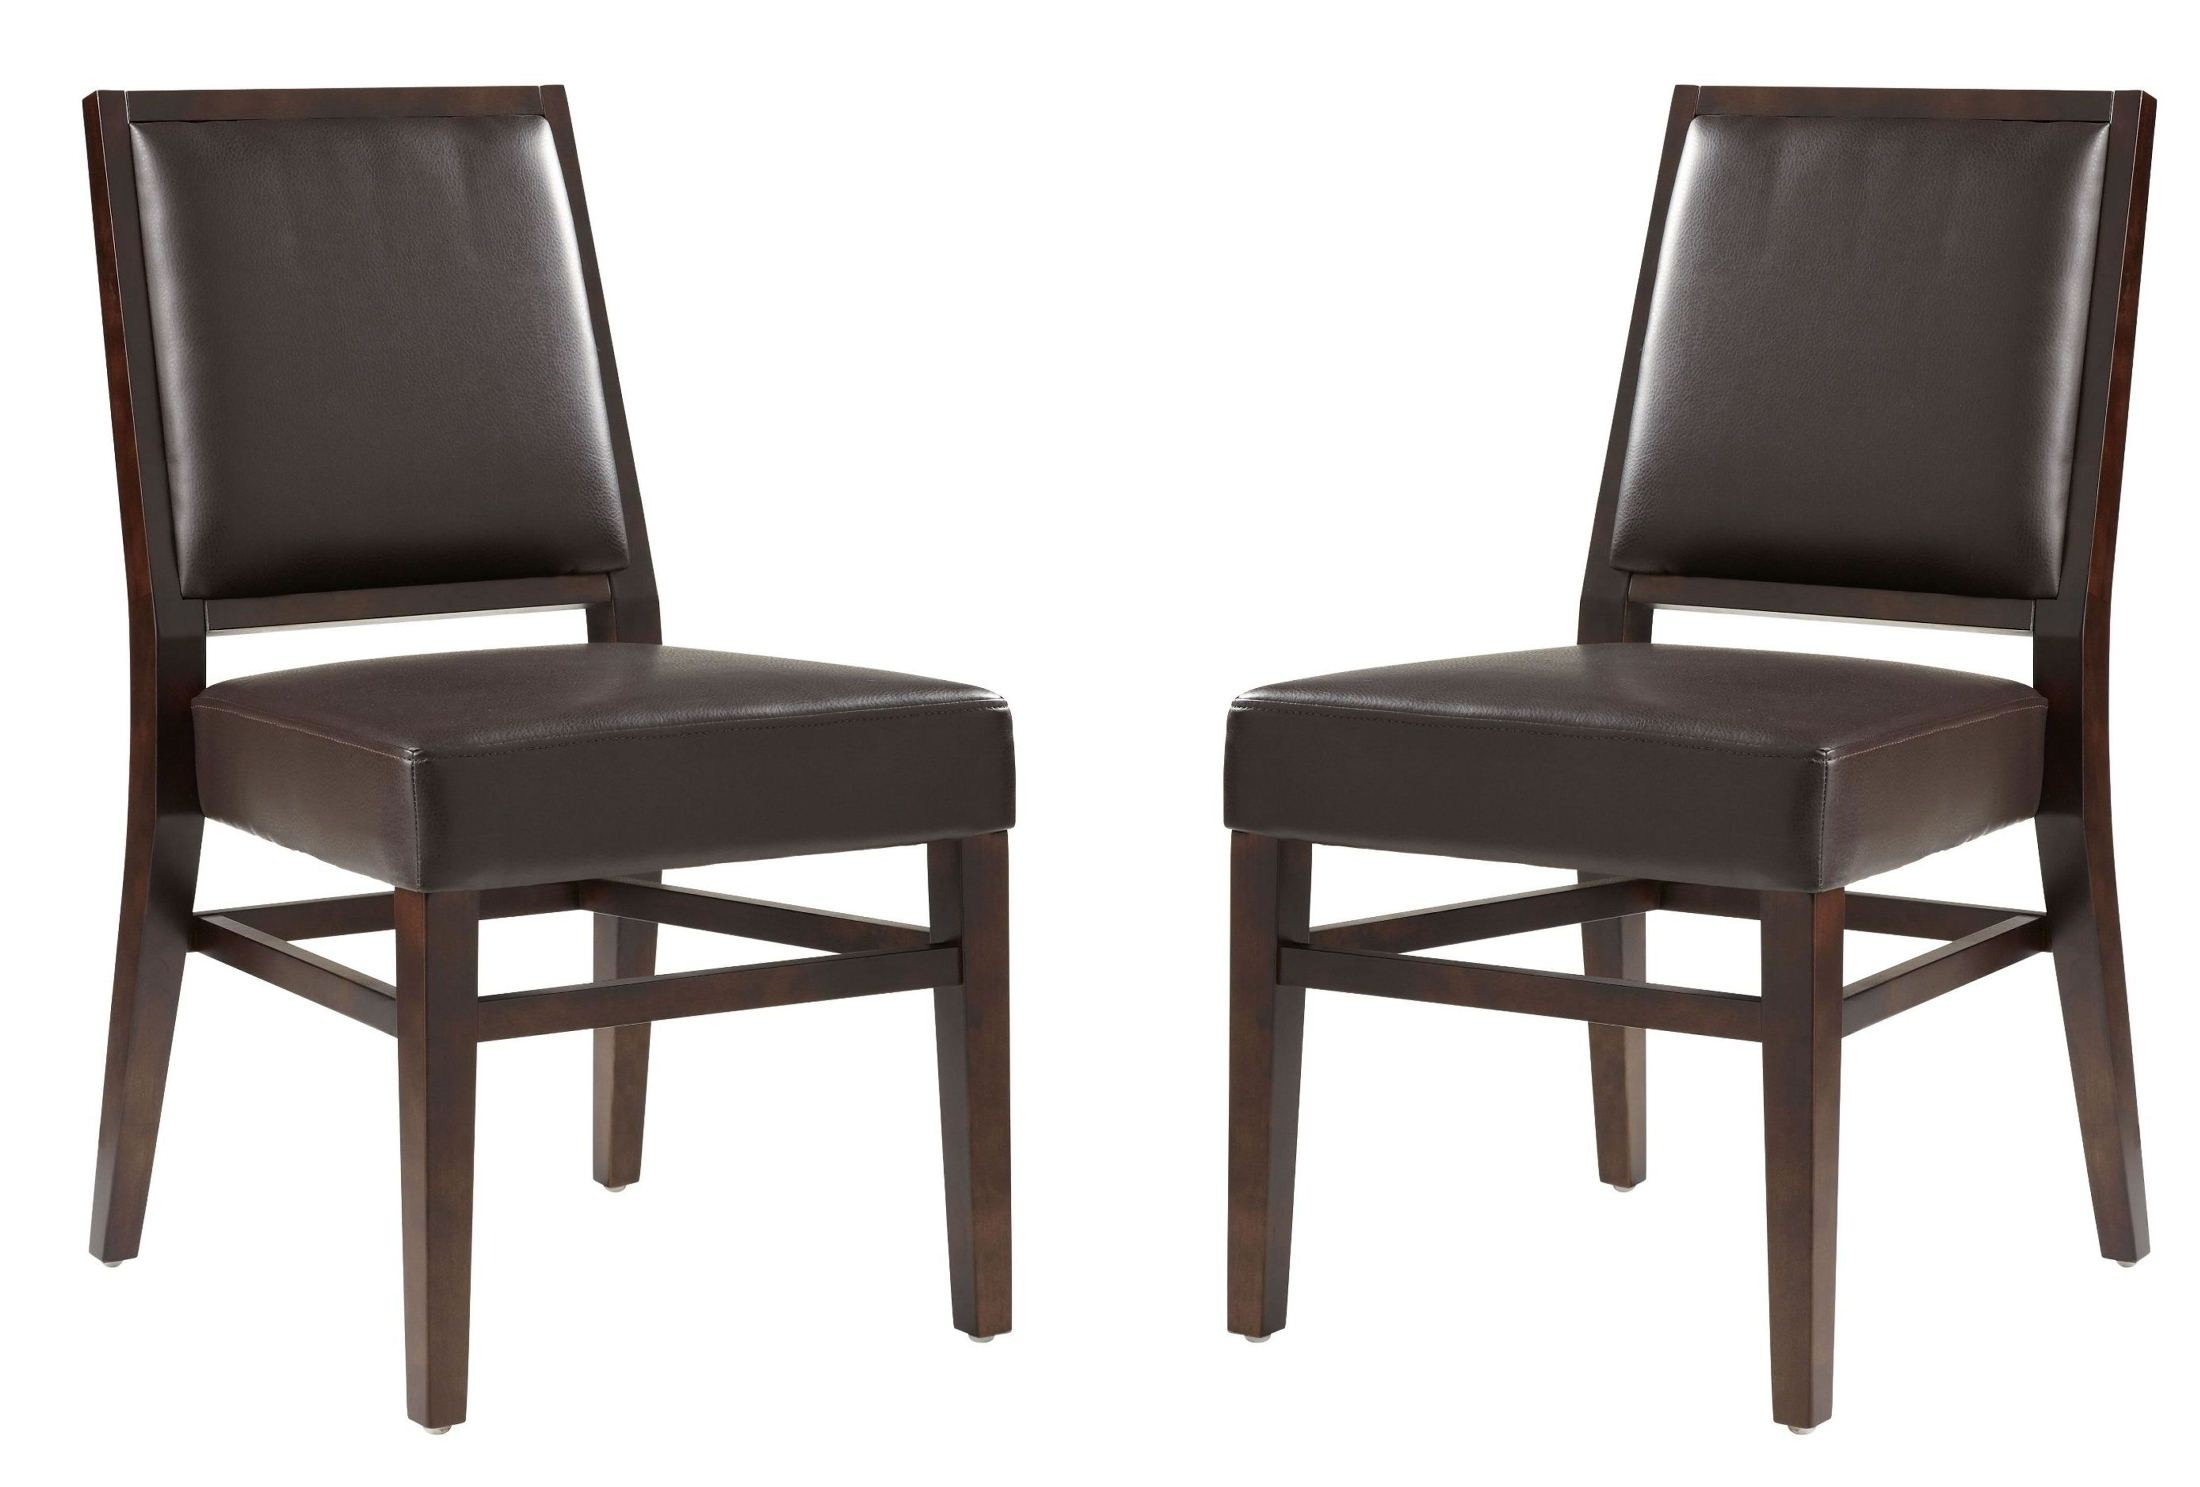 Citizen Brown Dining Chair Set Of 2 From Sunpan 19051